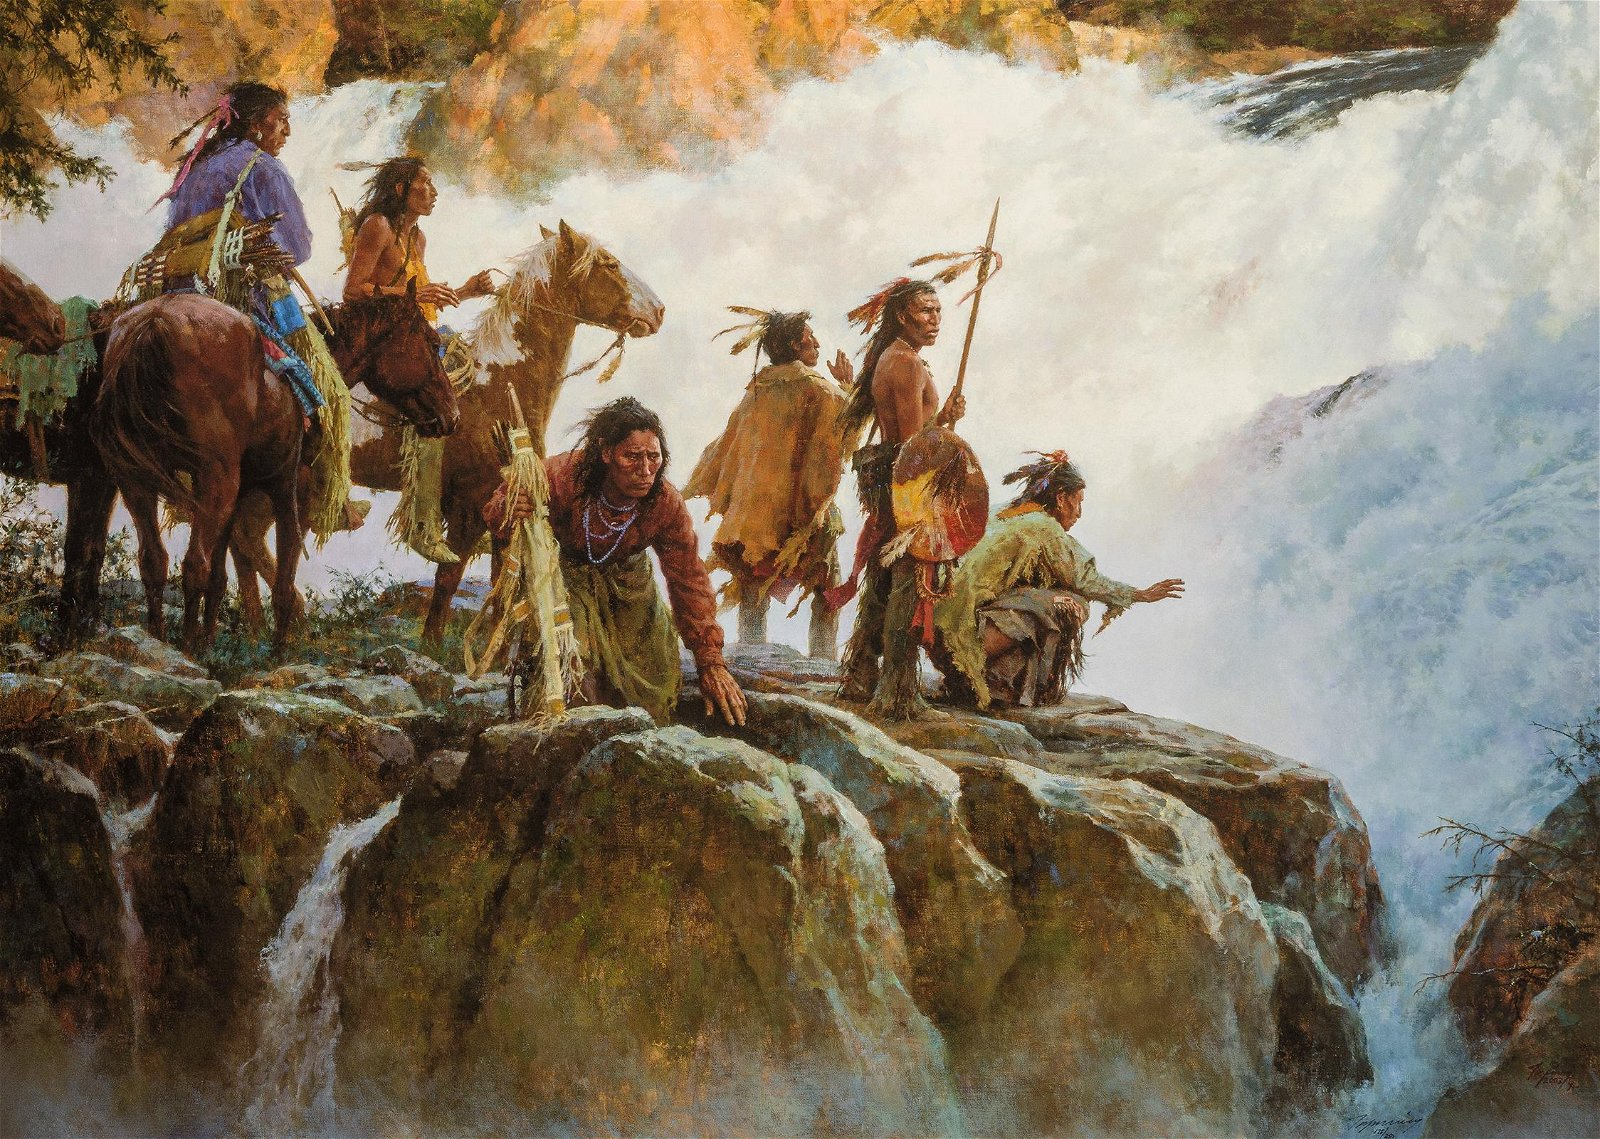 Howard Terpning | The Force of Nature Humbles All Men